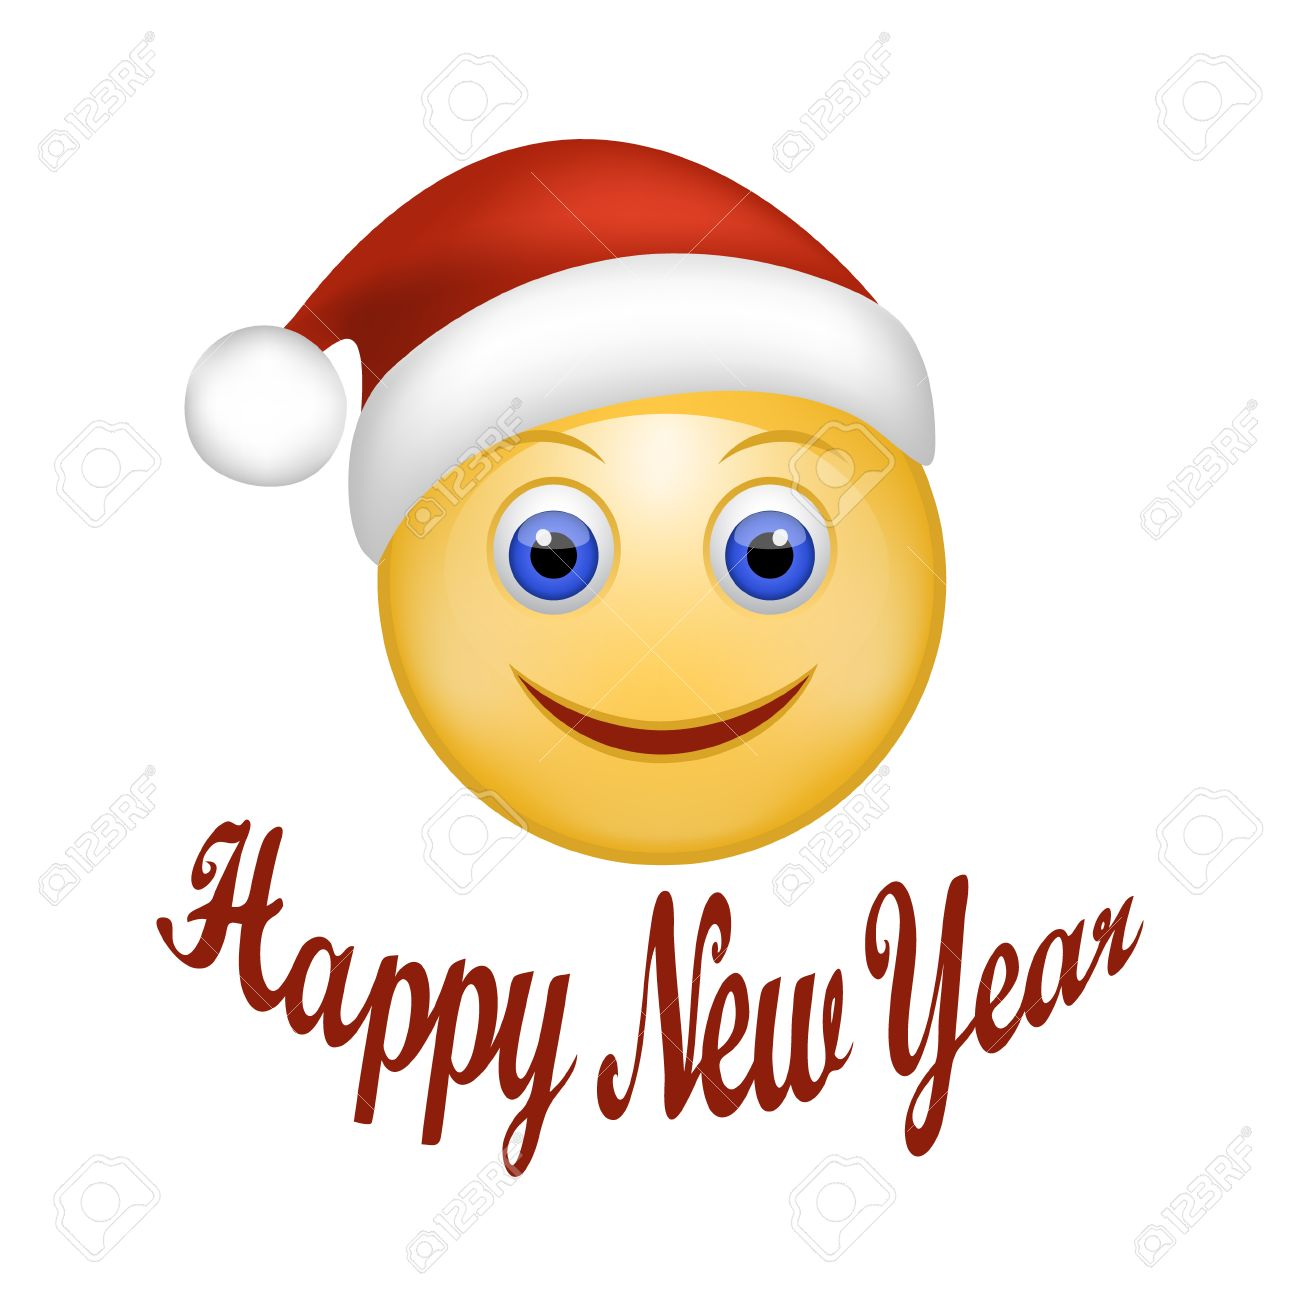 vector illustration of smiley face happy santa claus face emoticon rh 123rf com Smiley Face with Hat Clip Art Red Smiley Face Clip Art